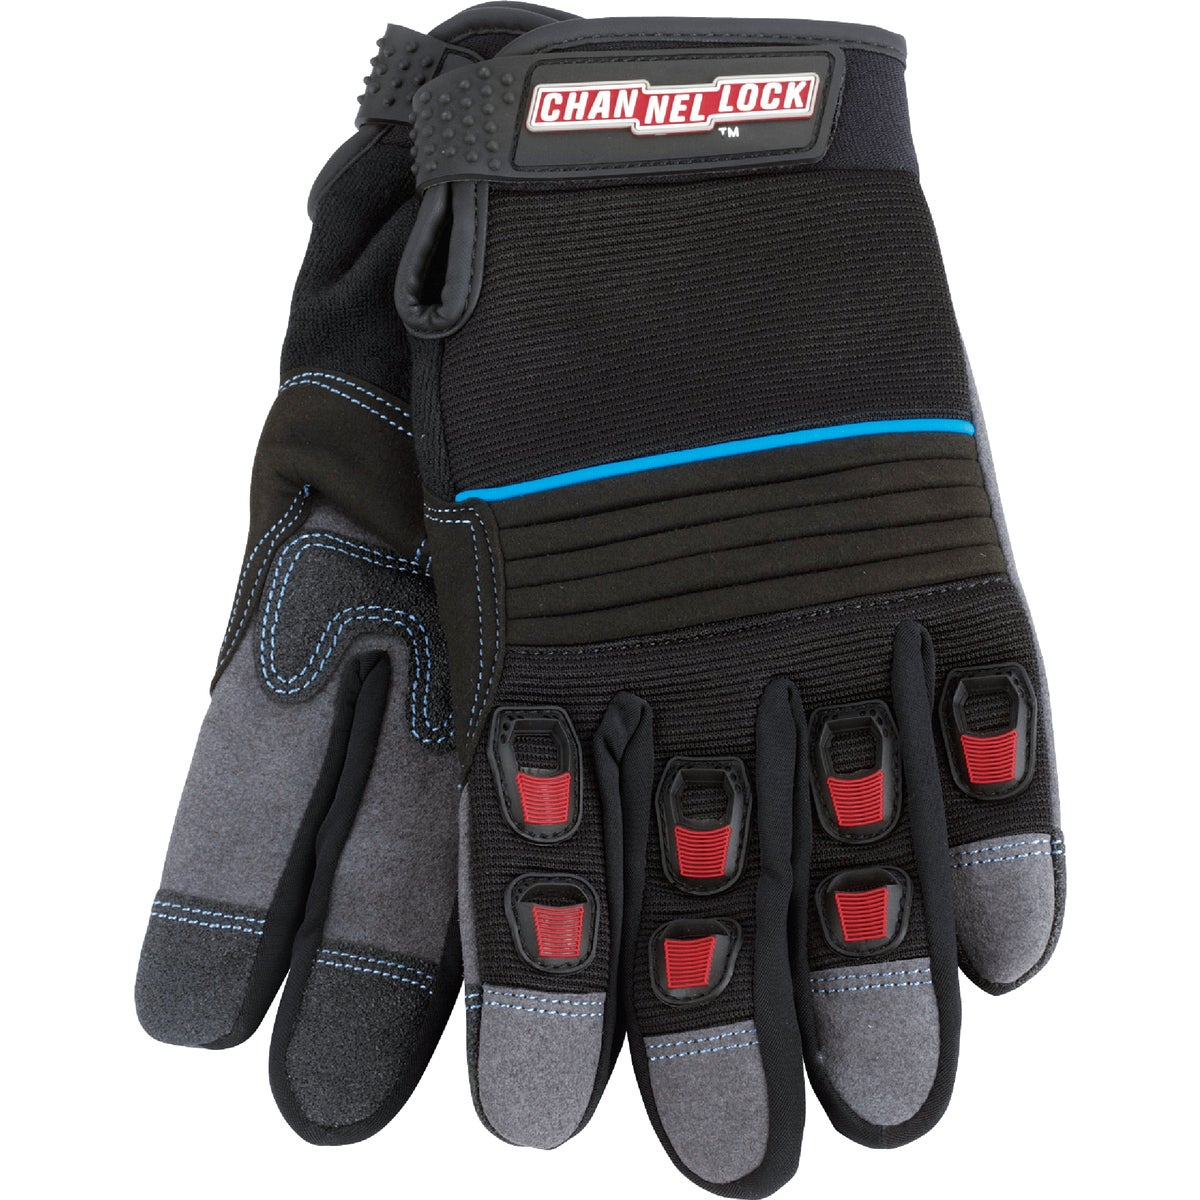 LRG PRO HVY DUTY GLOVE - 760553 by Channellock®